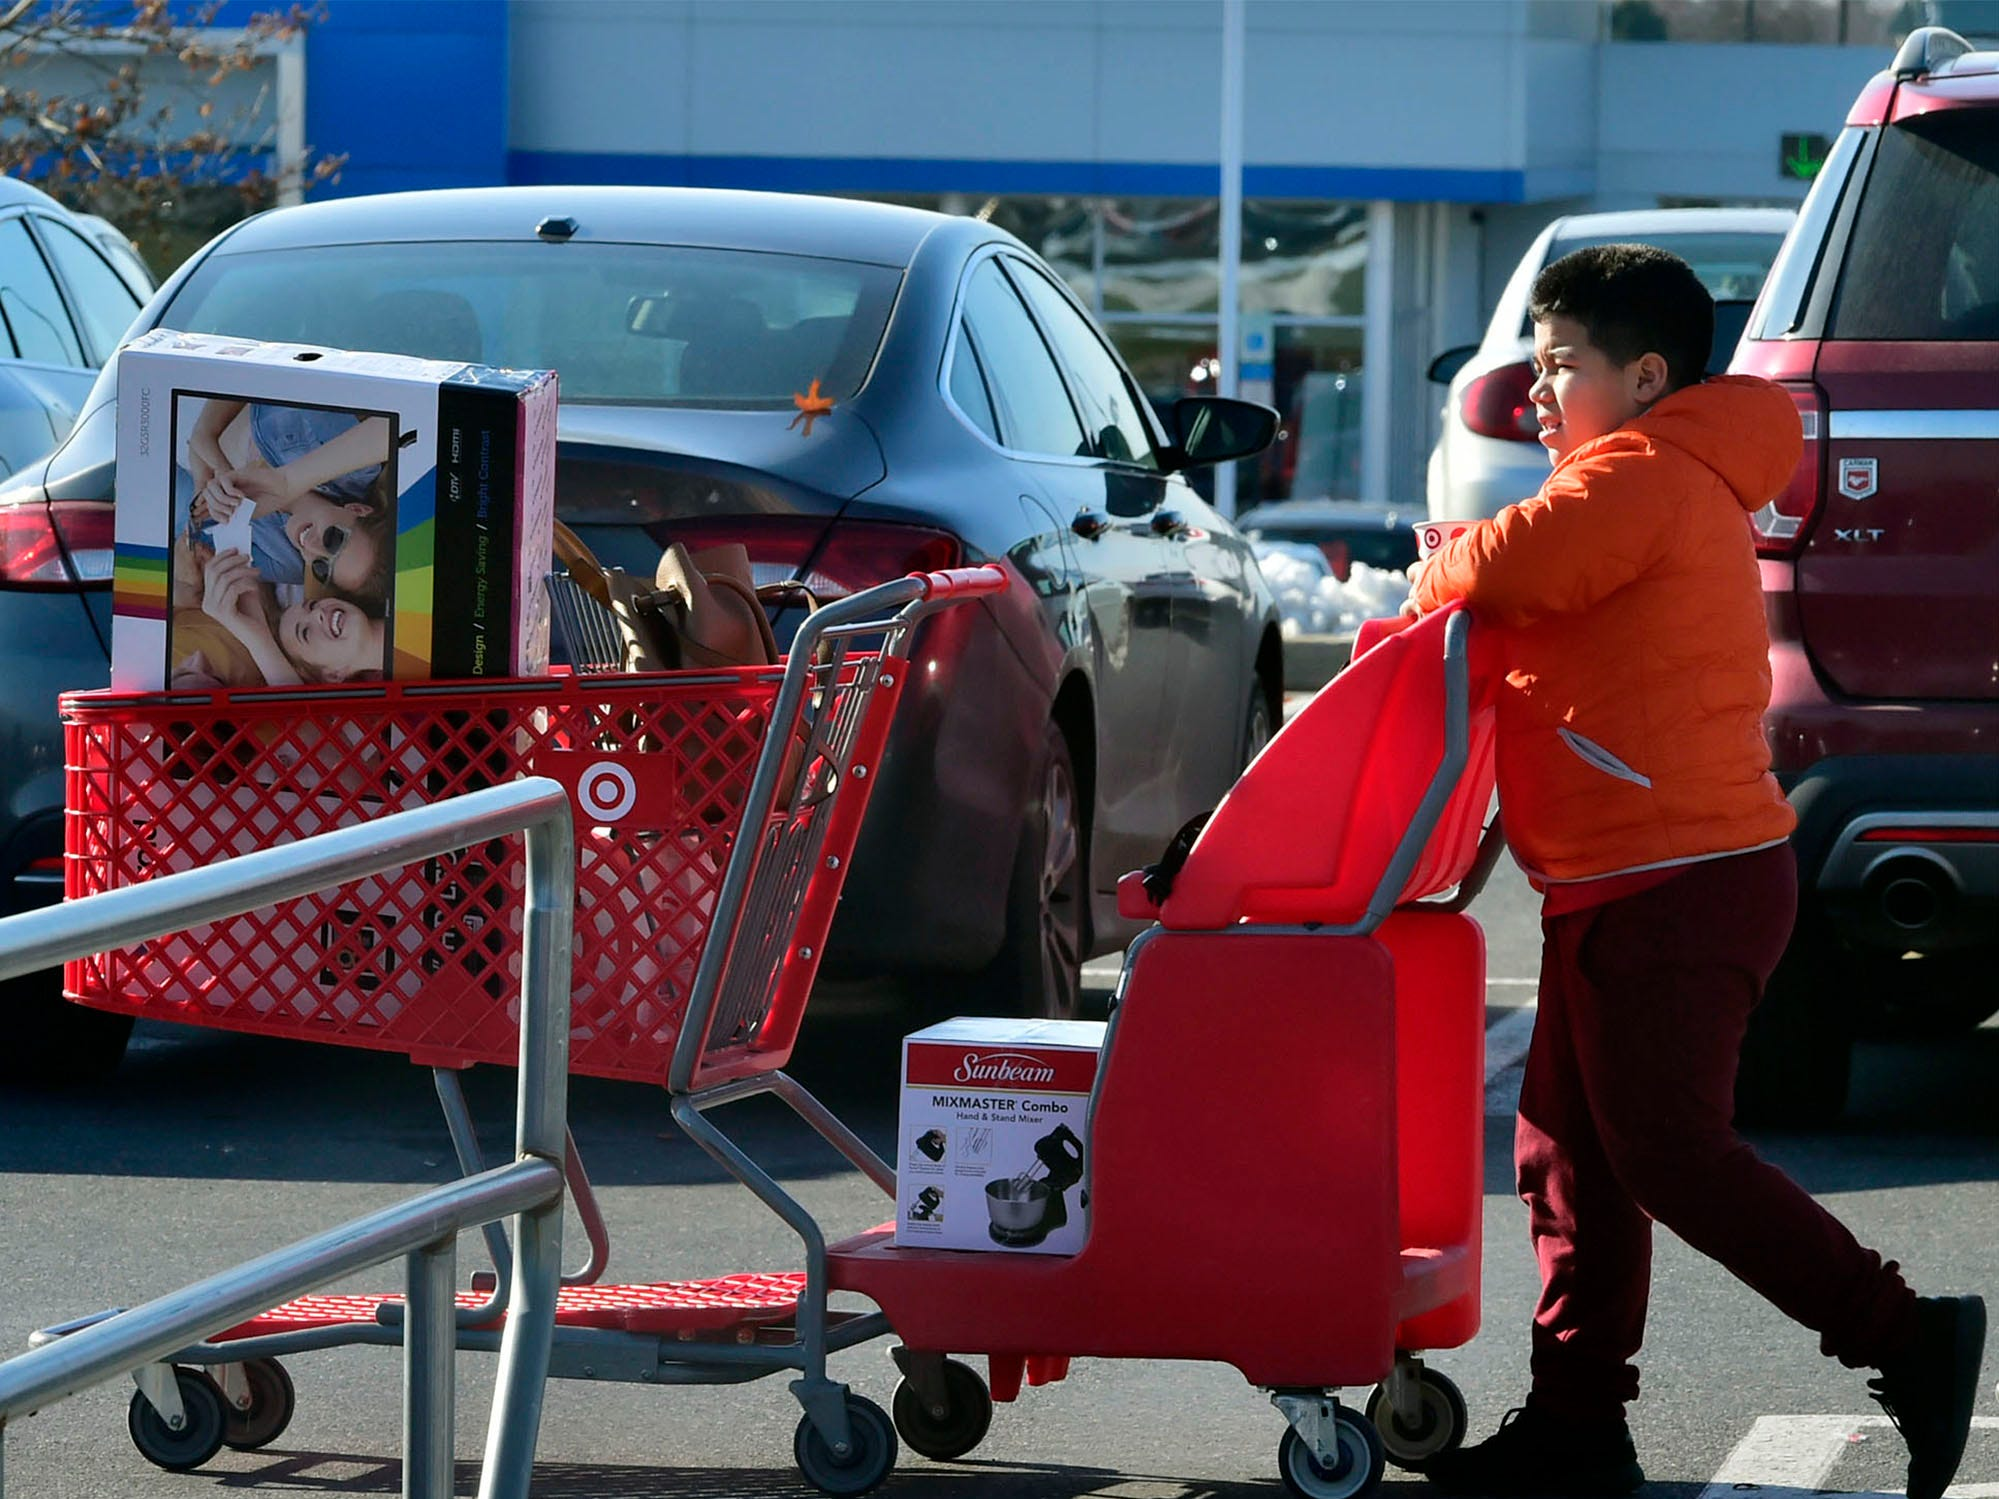 Frank Barrientos, 11, takes a cart to the car while shopping with family members at stores in Chambersburg Crossing on Friday, November 23, 2018. Shoppers were at the malls and stores looking for great deals on Black Friday.